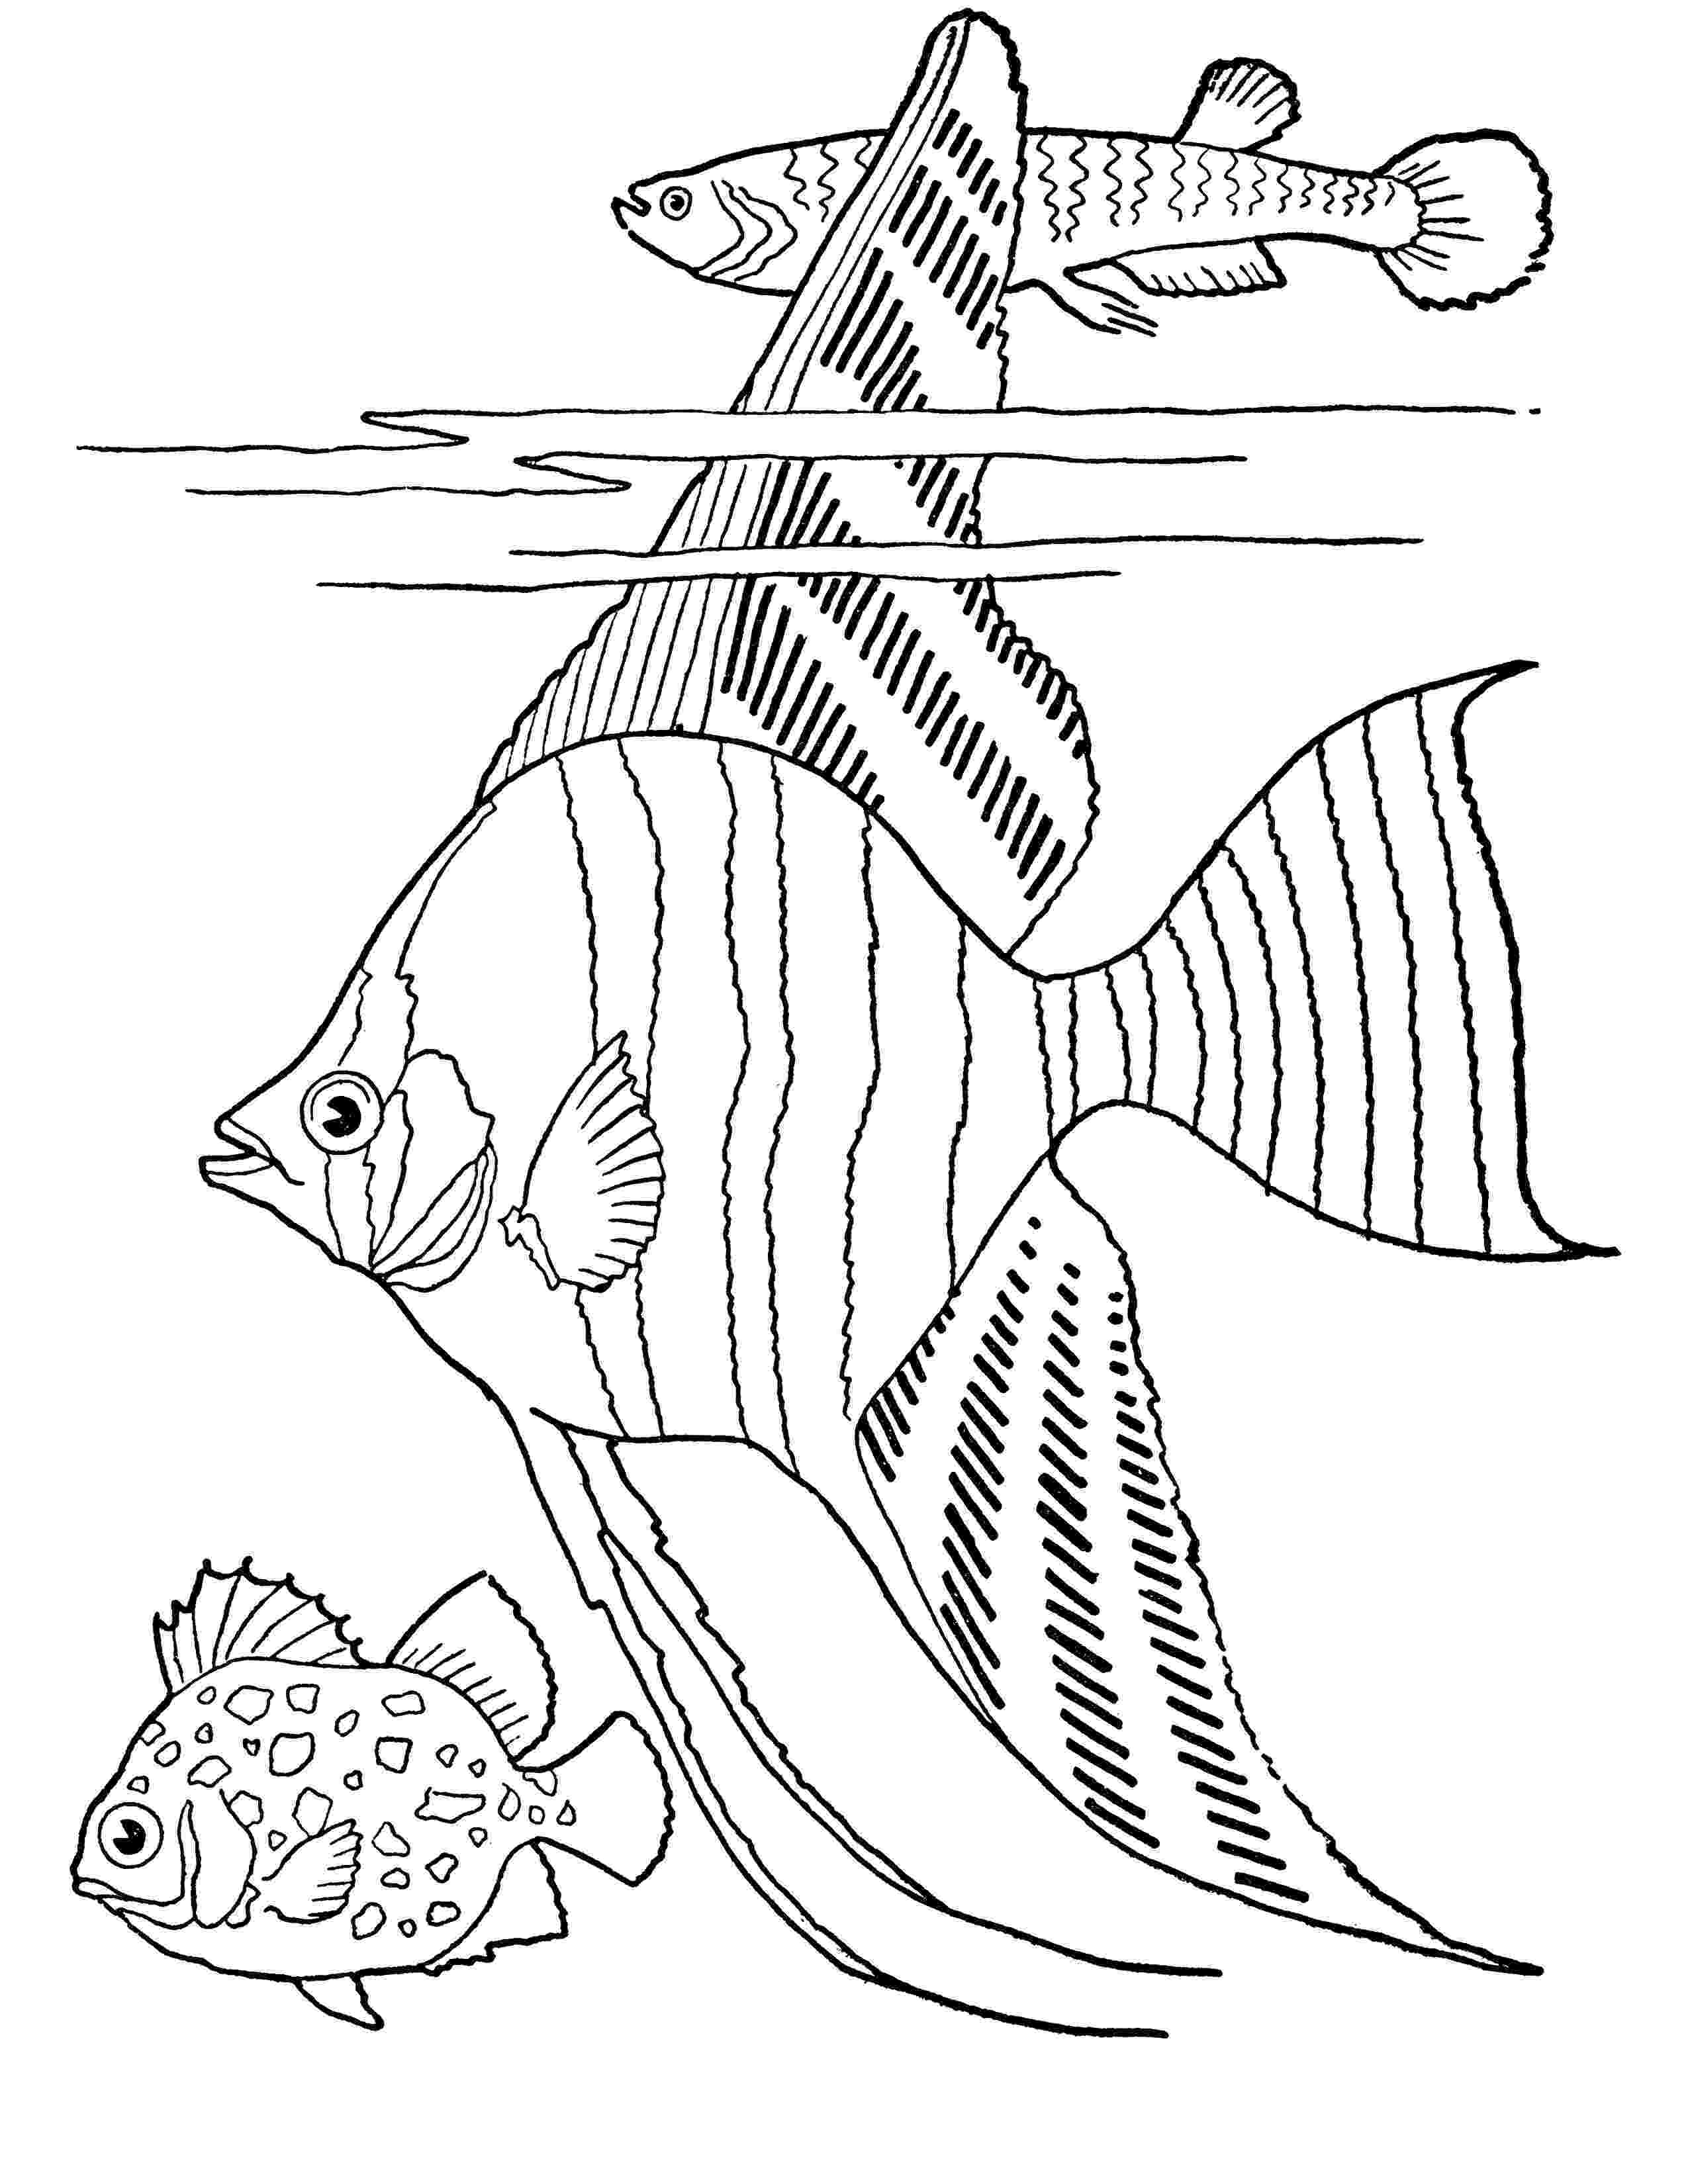 tropical fish coloring pages top 10 free printable tropical fish coloring pages online tropical pages fish coloring